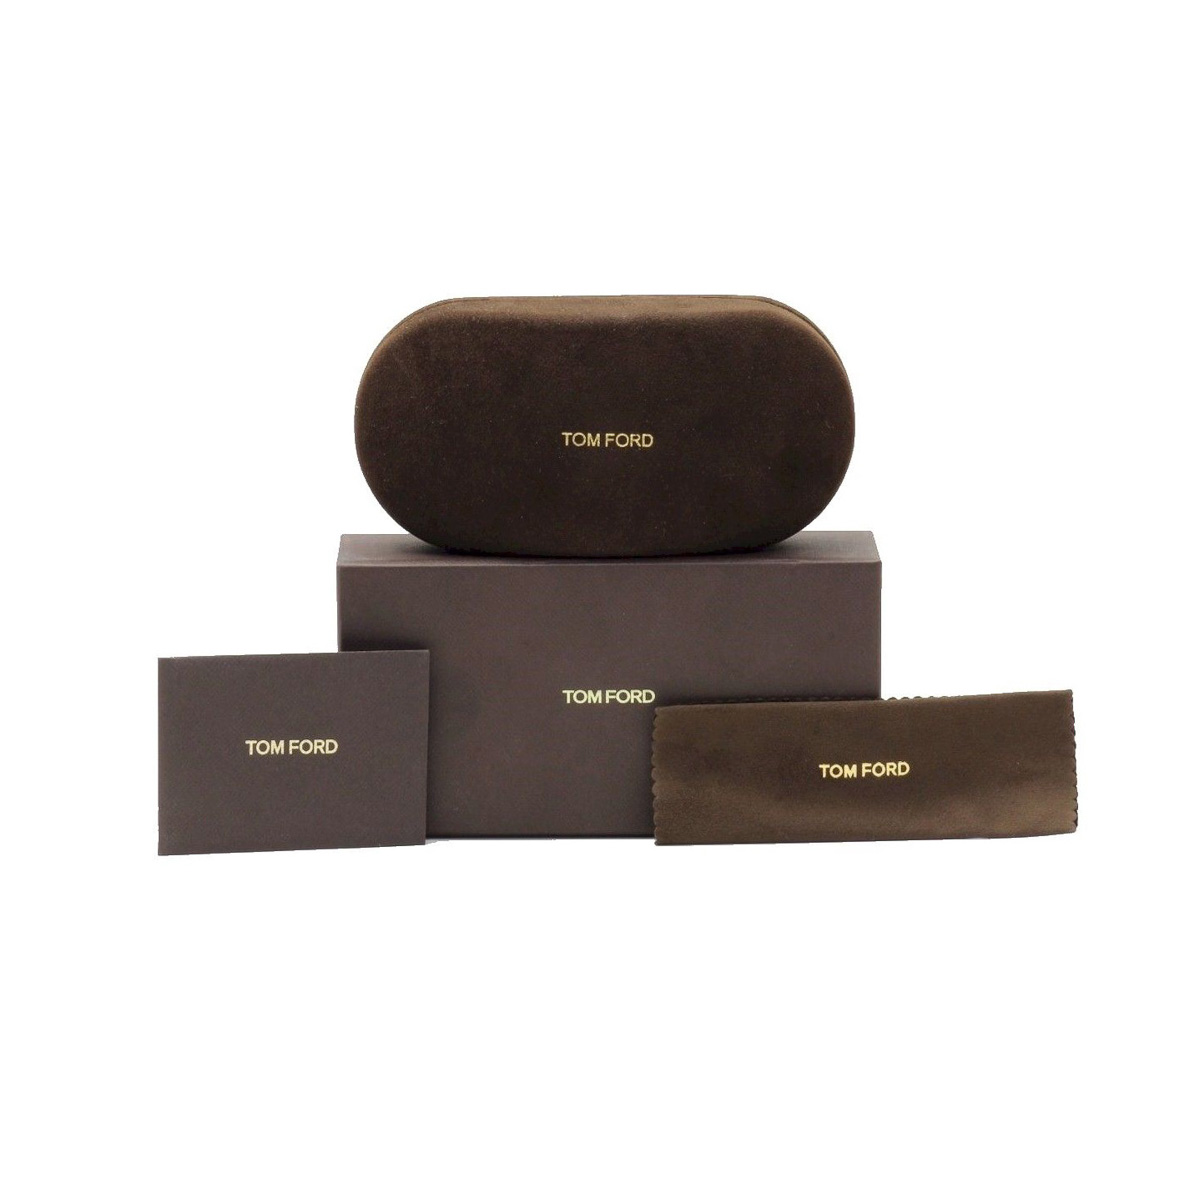 Tom Ford eyewear packaging